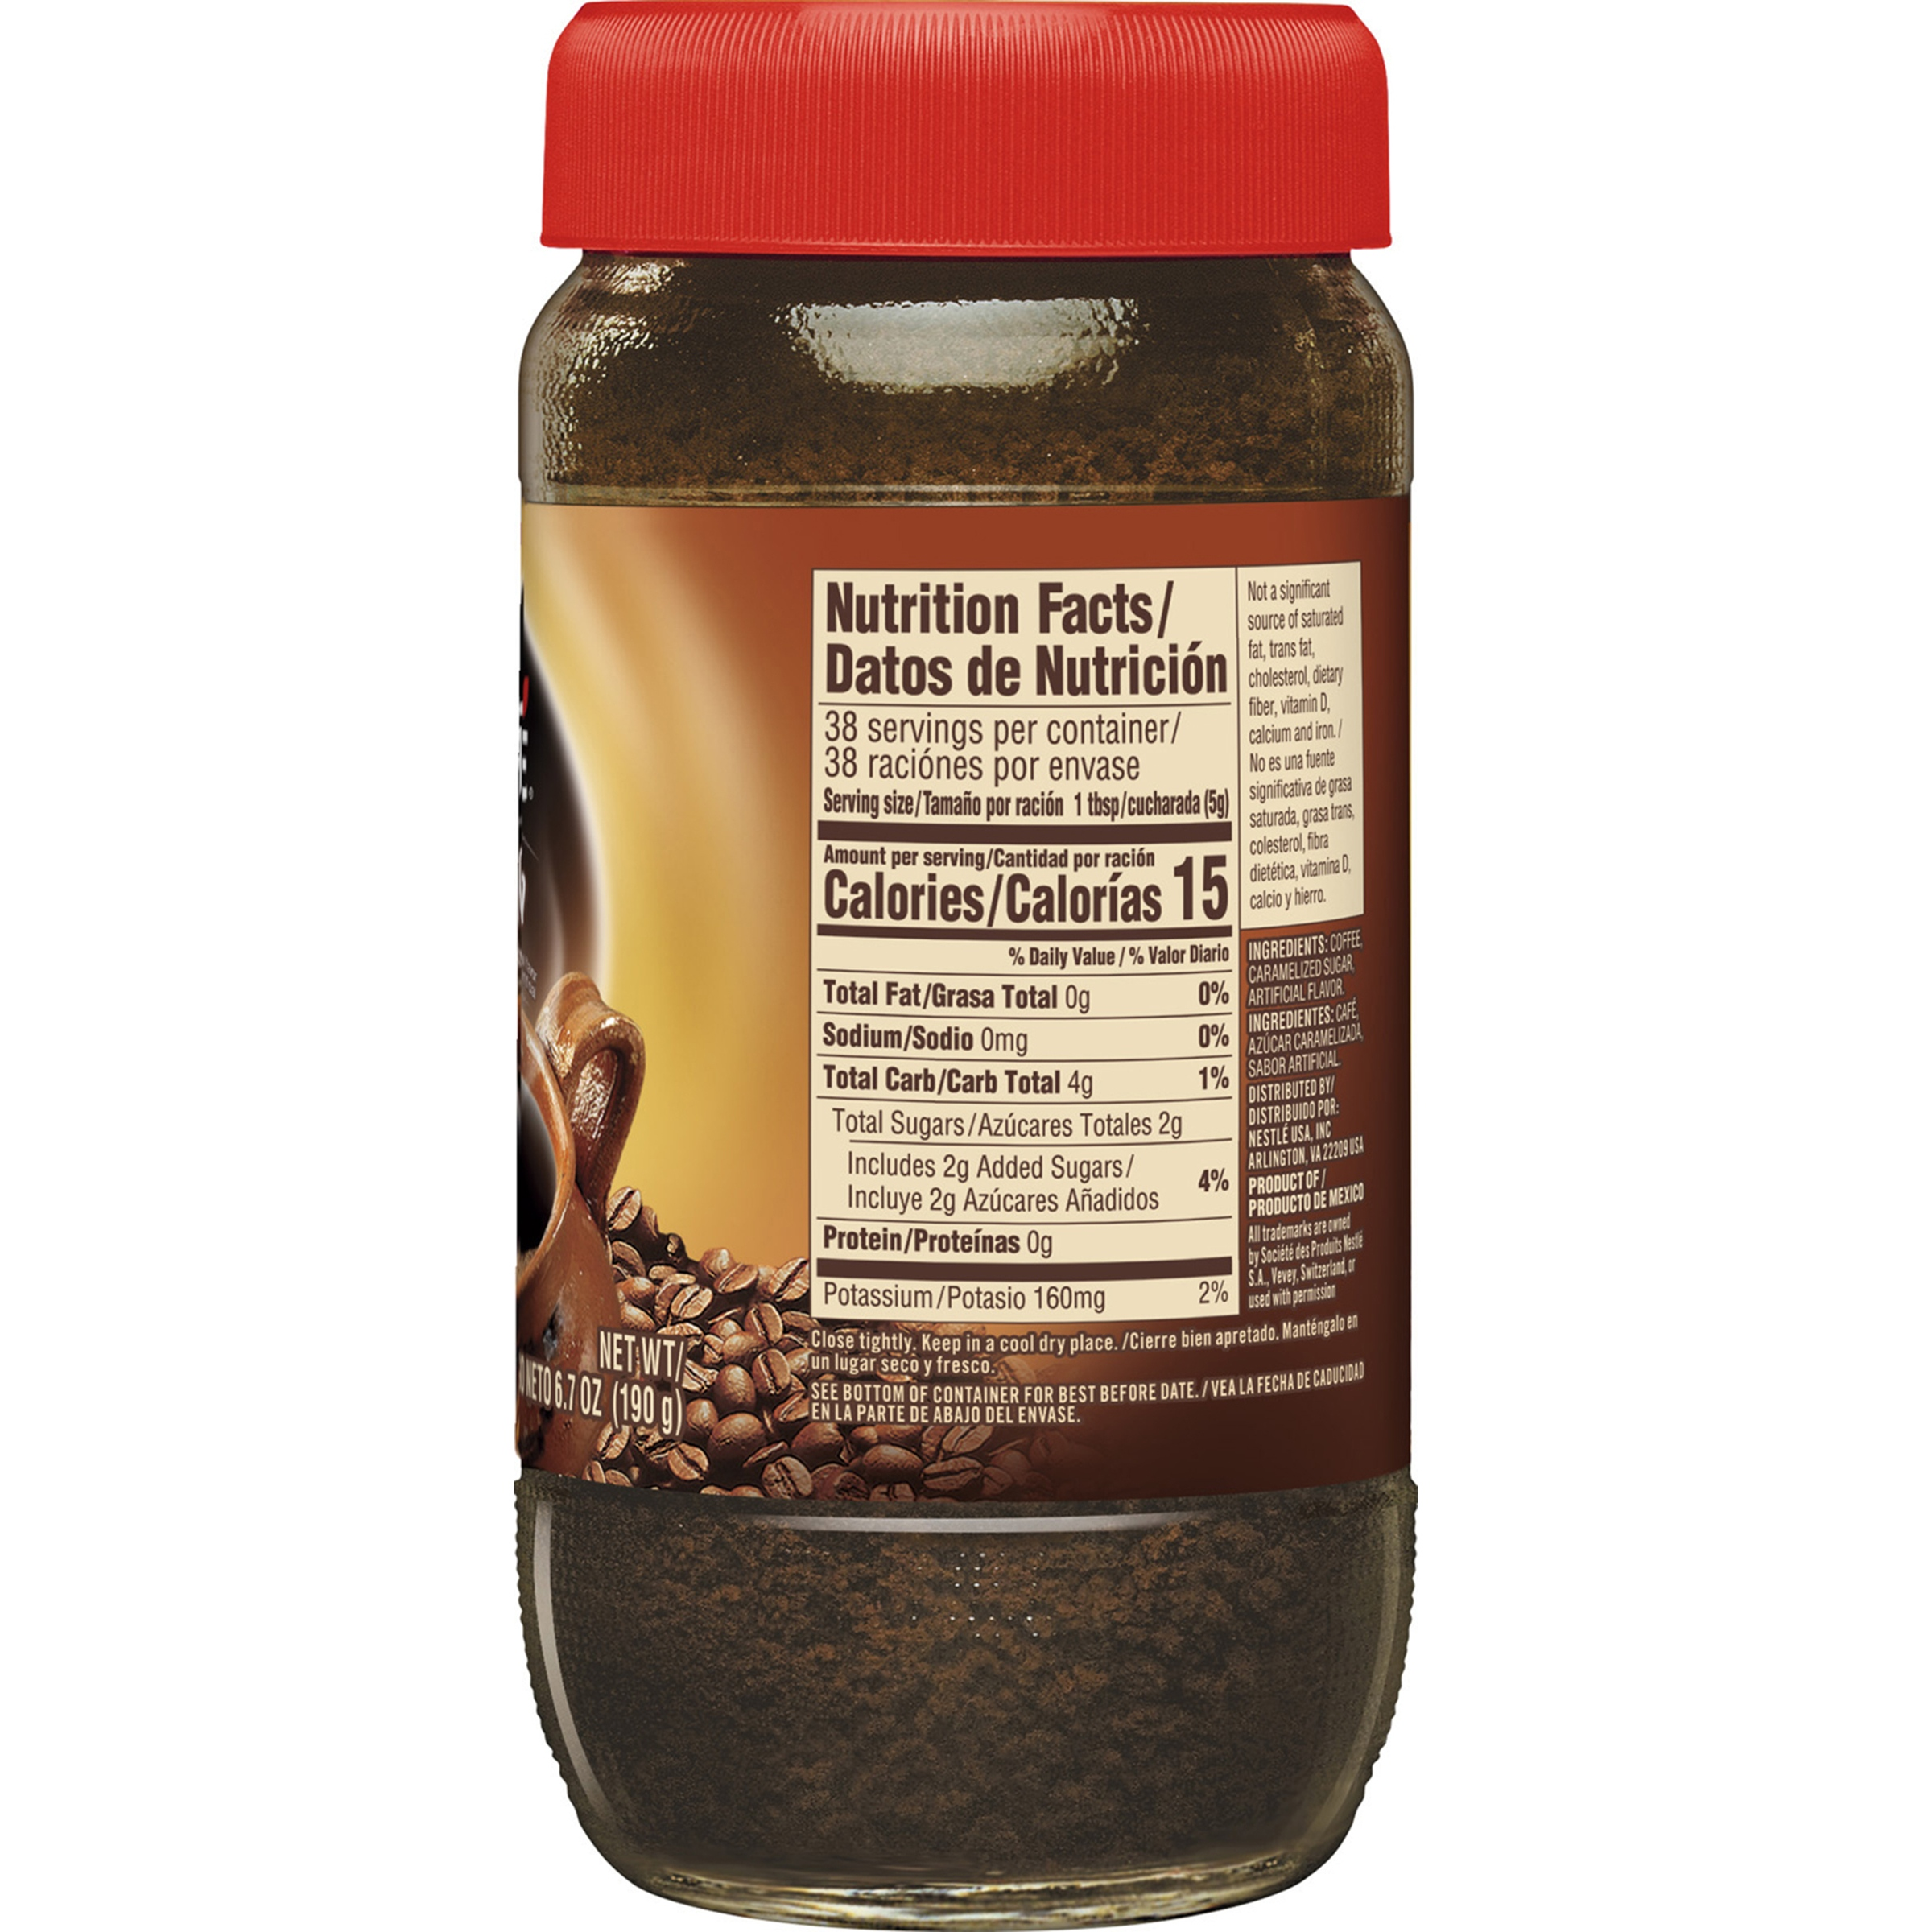 NESCAFE CAFE DE OLLA Cinnamon Instant Coffee Beverage 6.7 oz. Jar - Walmart.com